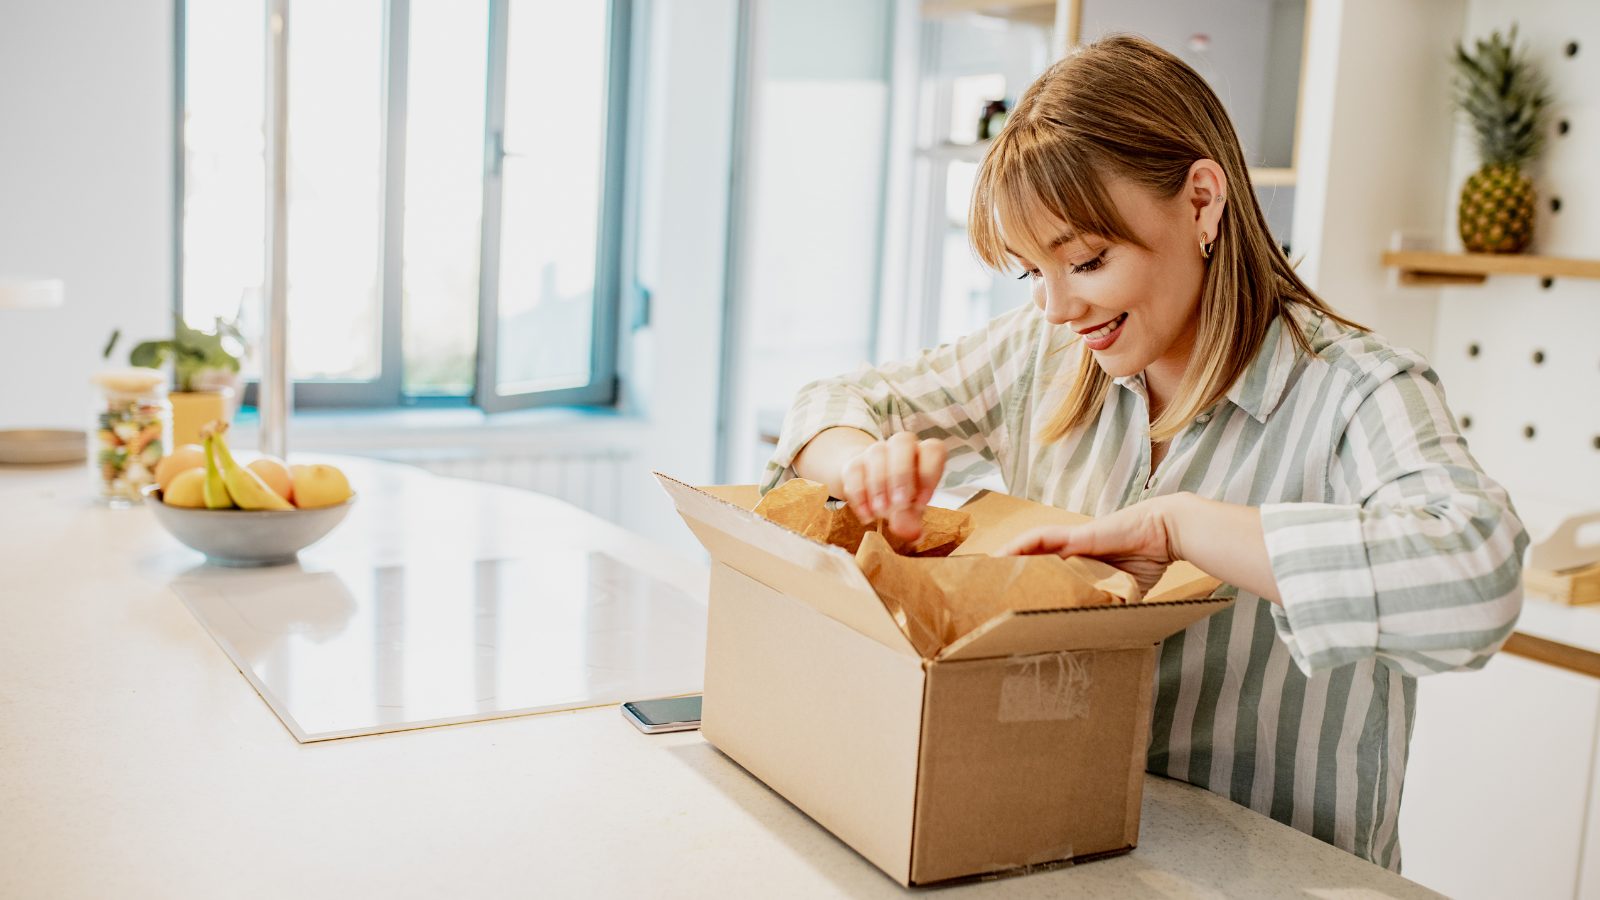 oung woman unpack the package she ordered online